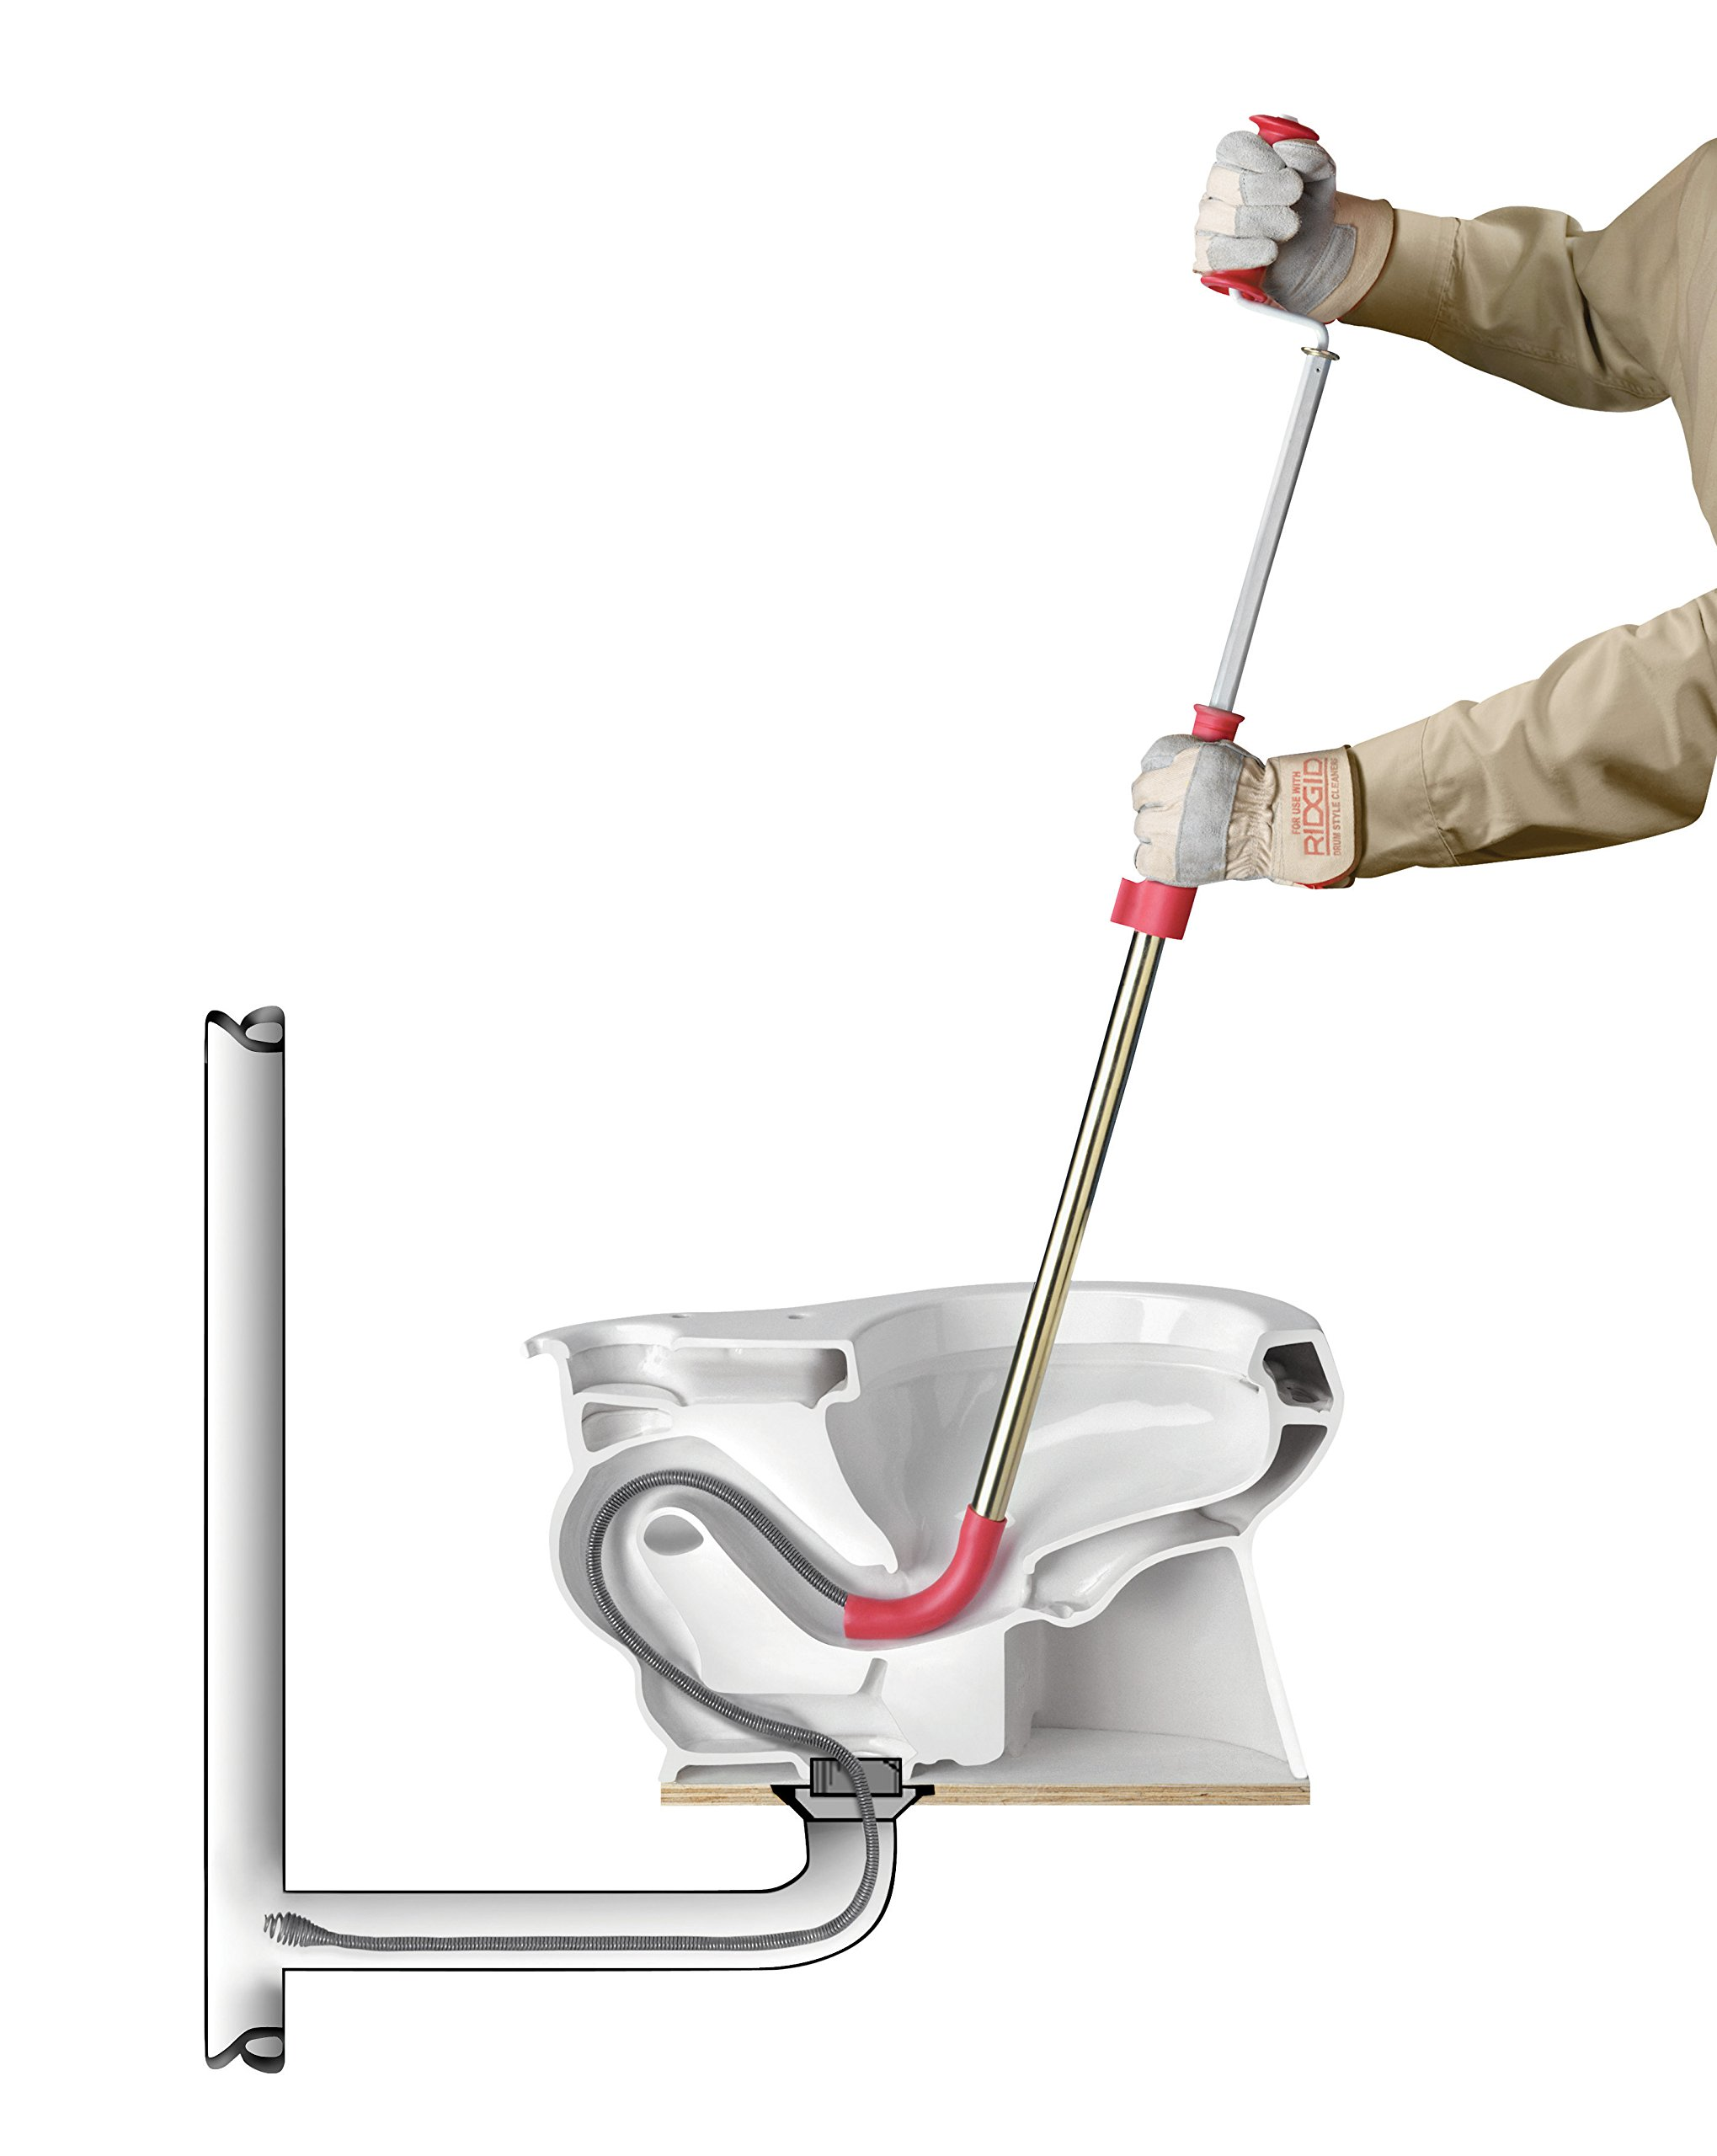 RIDGID 59797 K-6 Toilet Auger, 6-Foot Toilet Auger Snake with Bulb Head to Clear Clogged Toilets by Ridgid